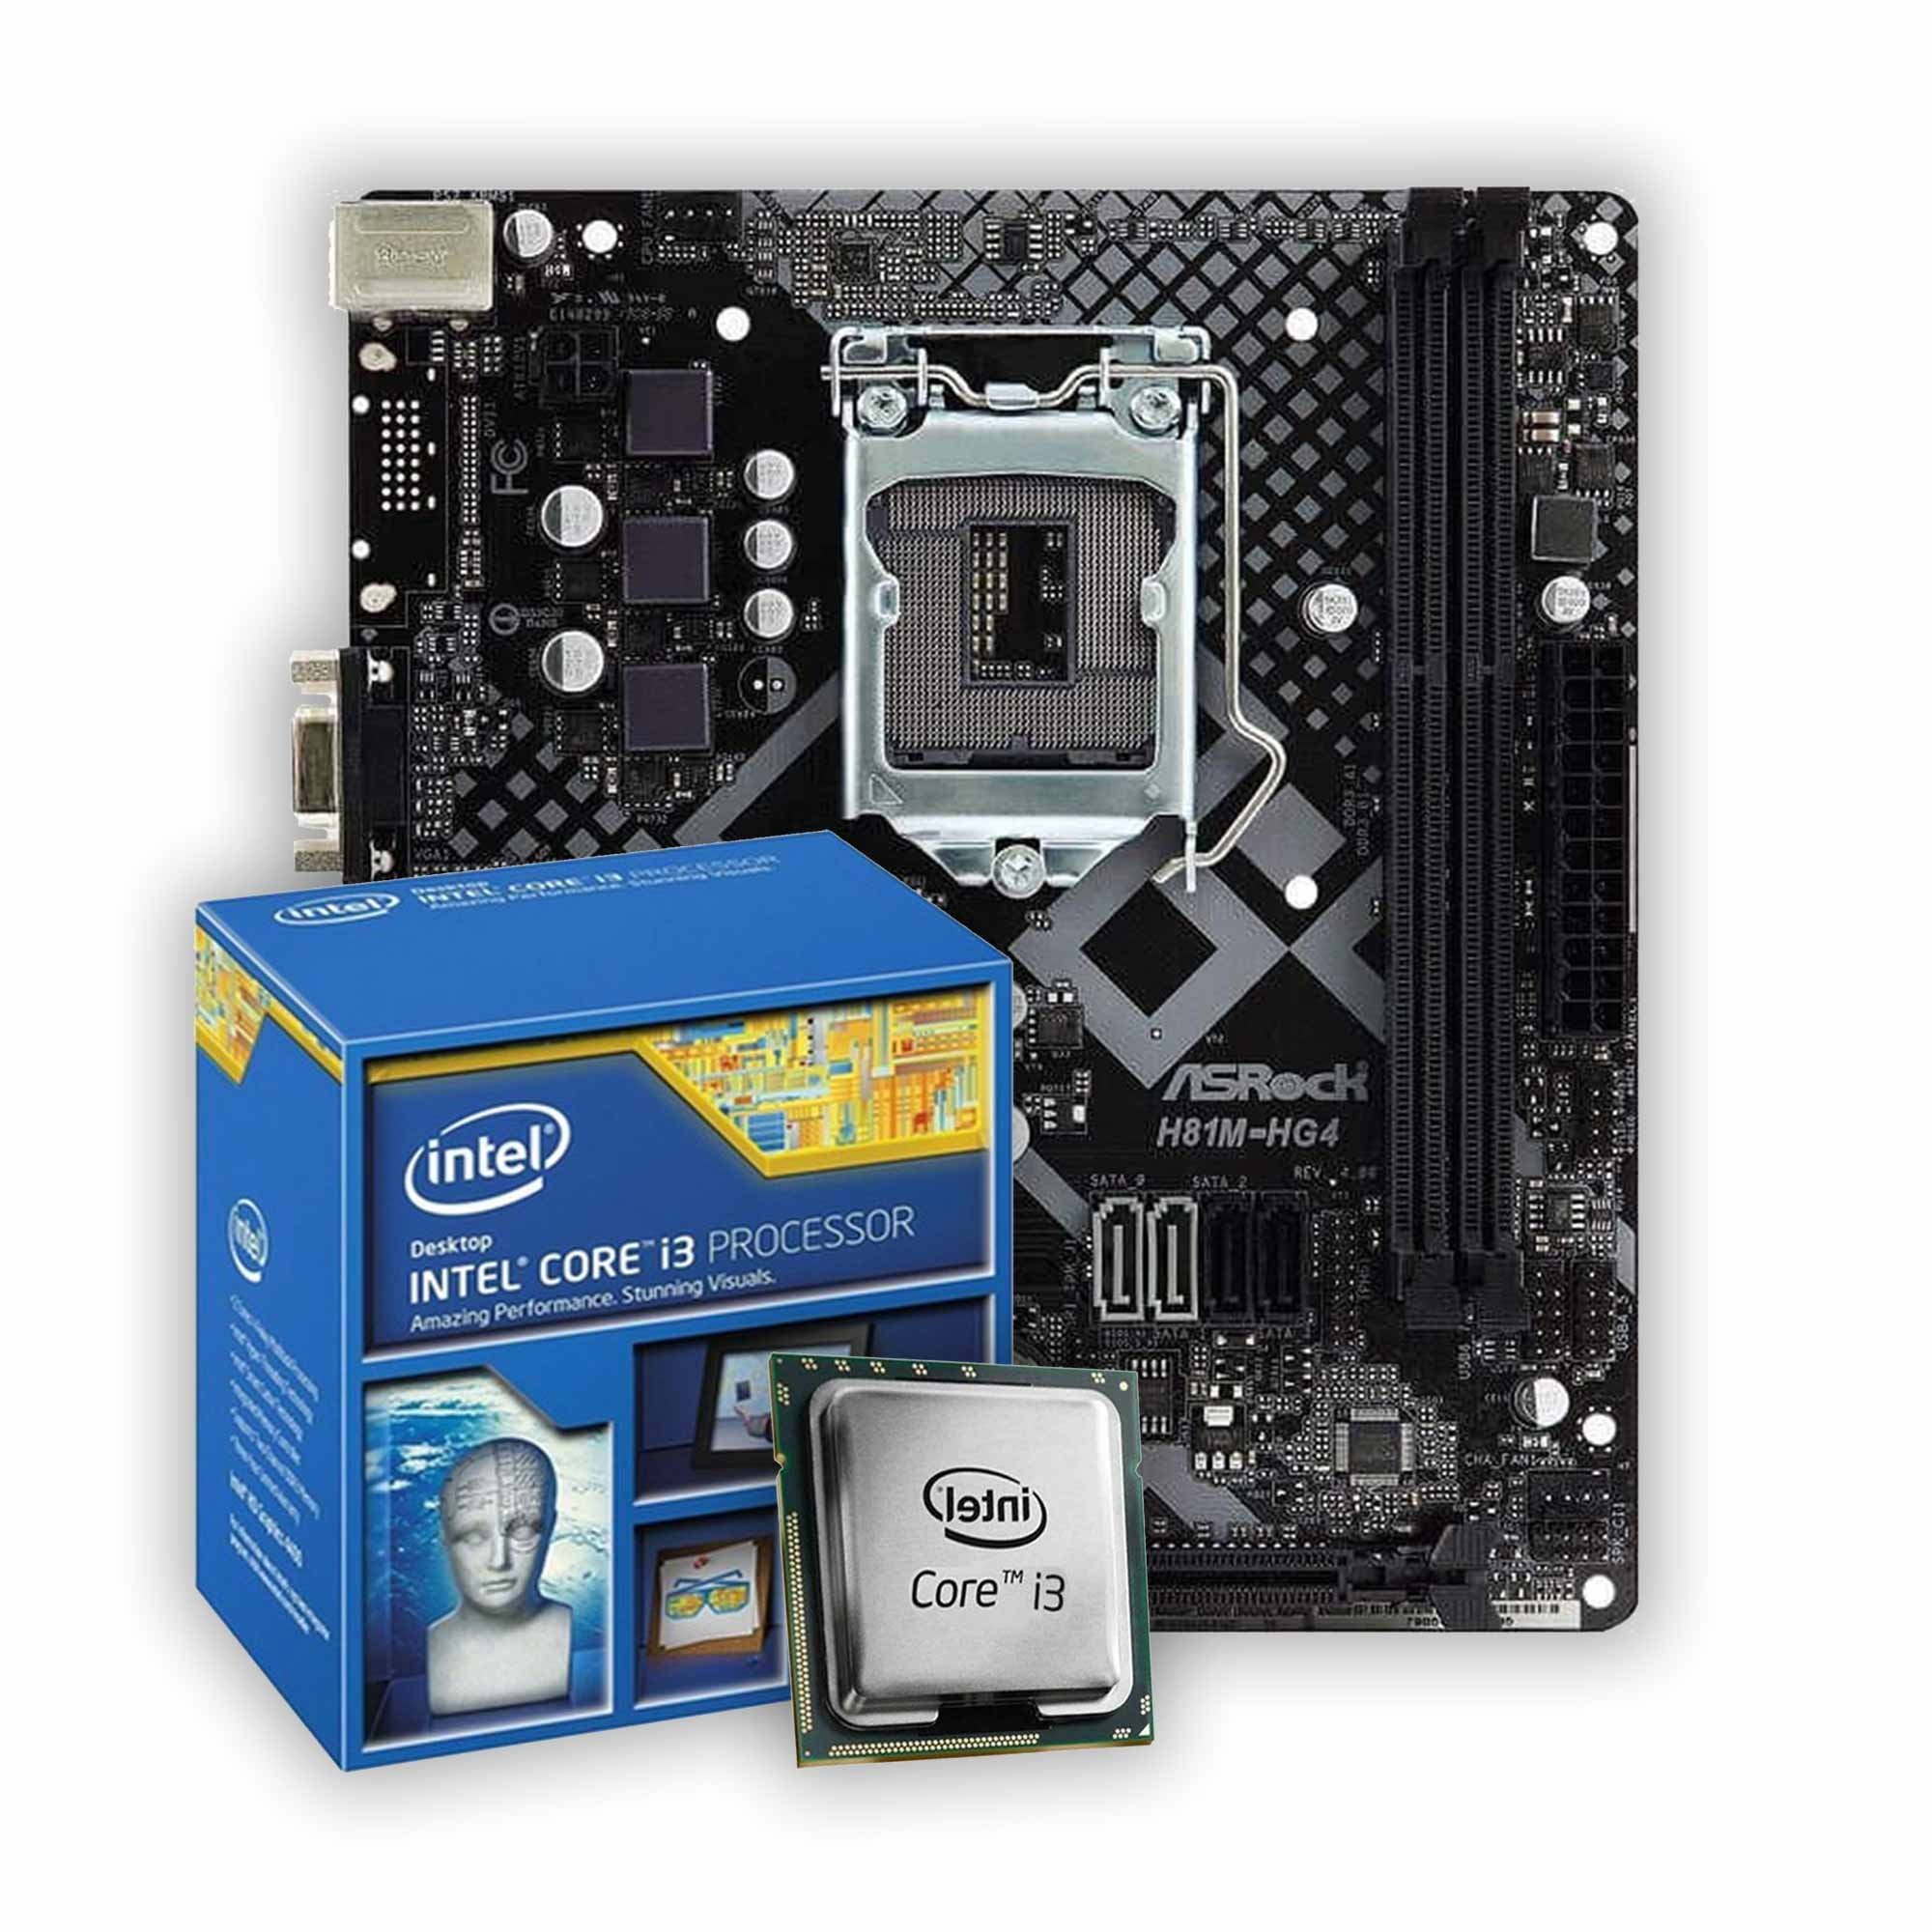 Kit Upgrade, Intel i3 4160 e Placa mãe H81M HG4